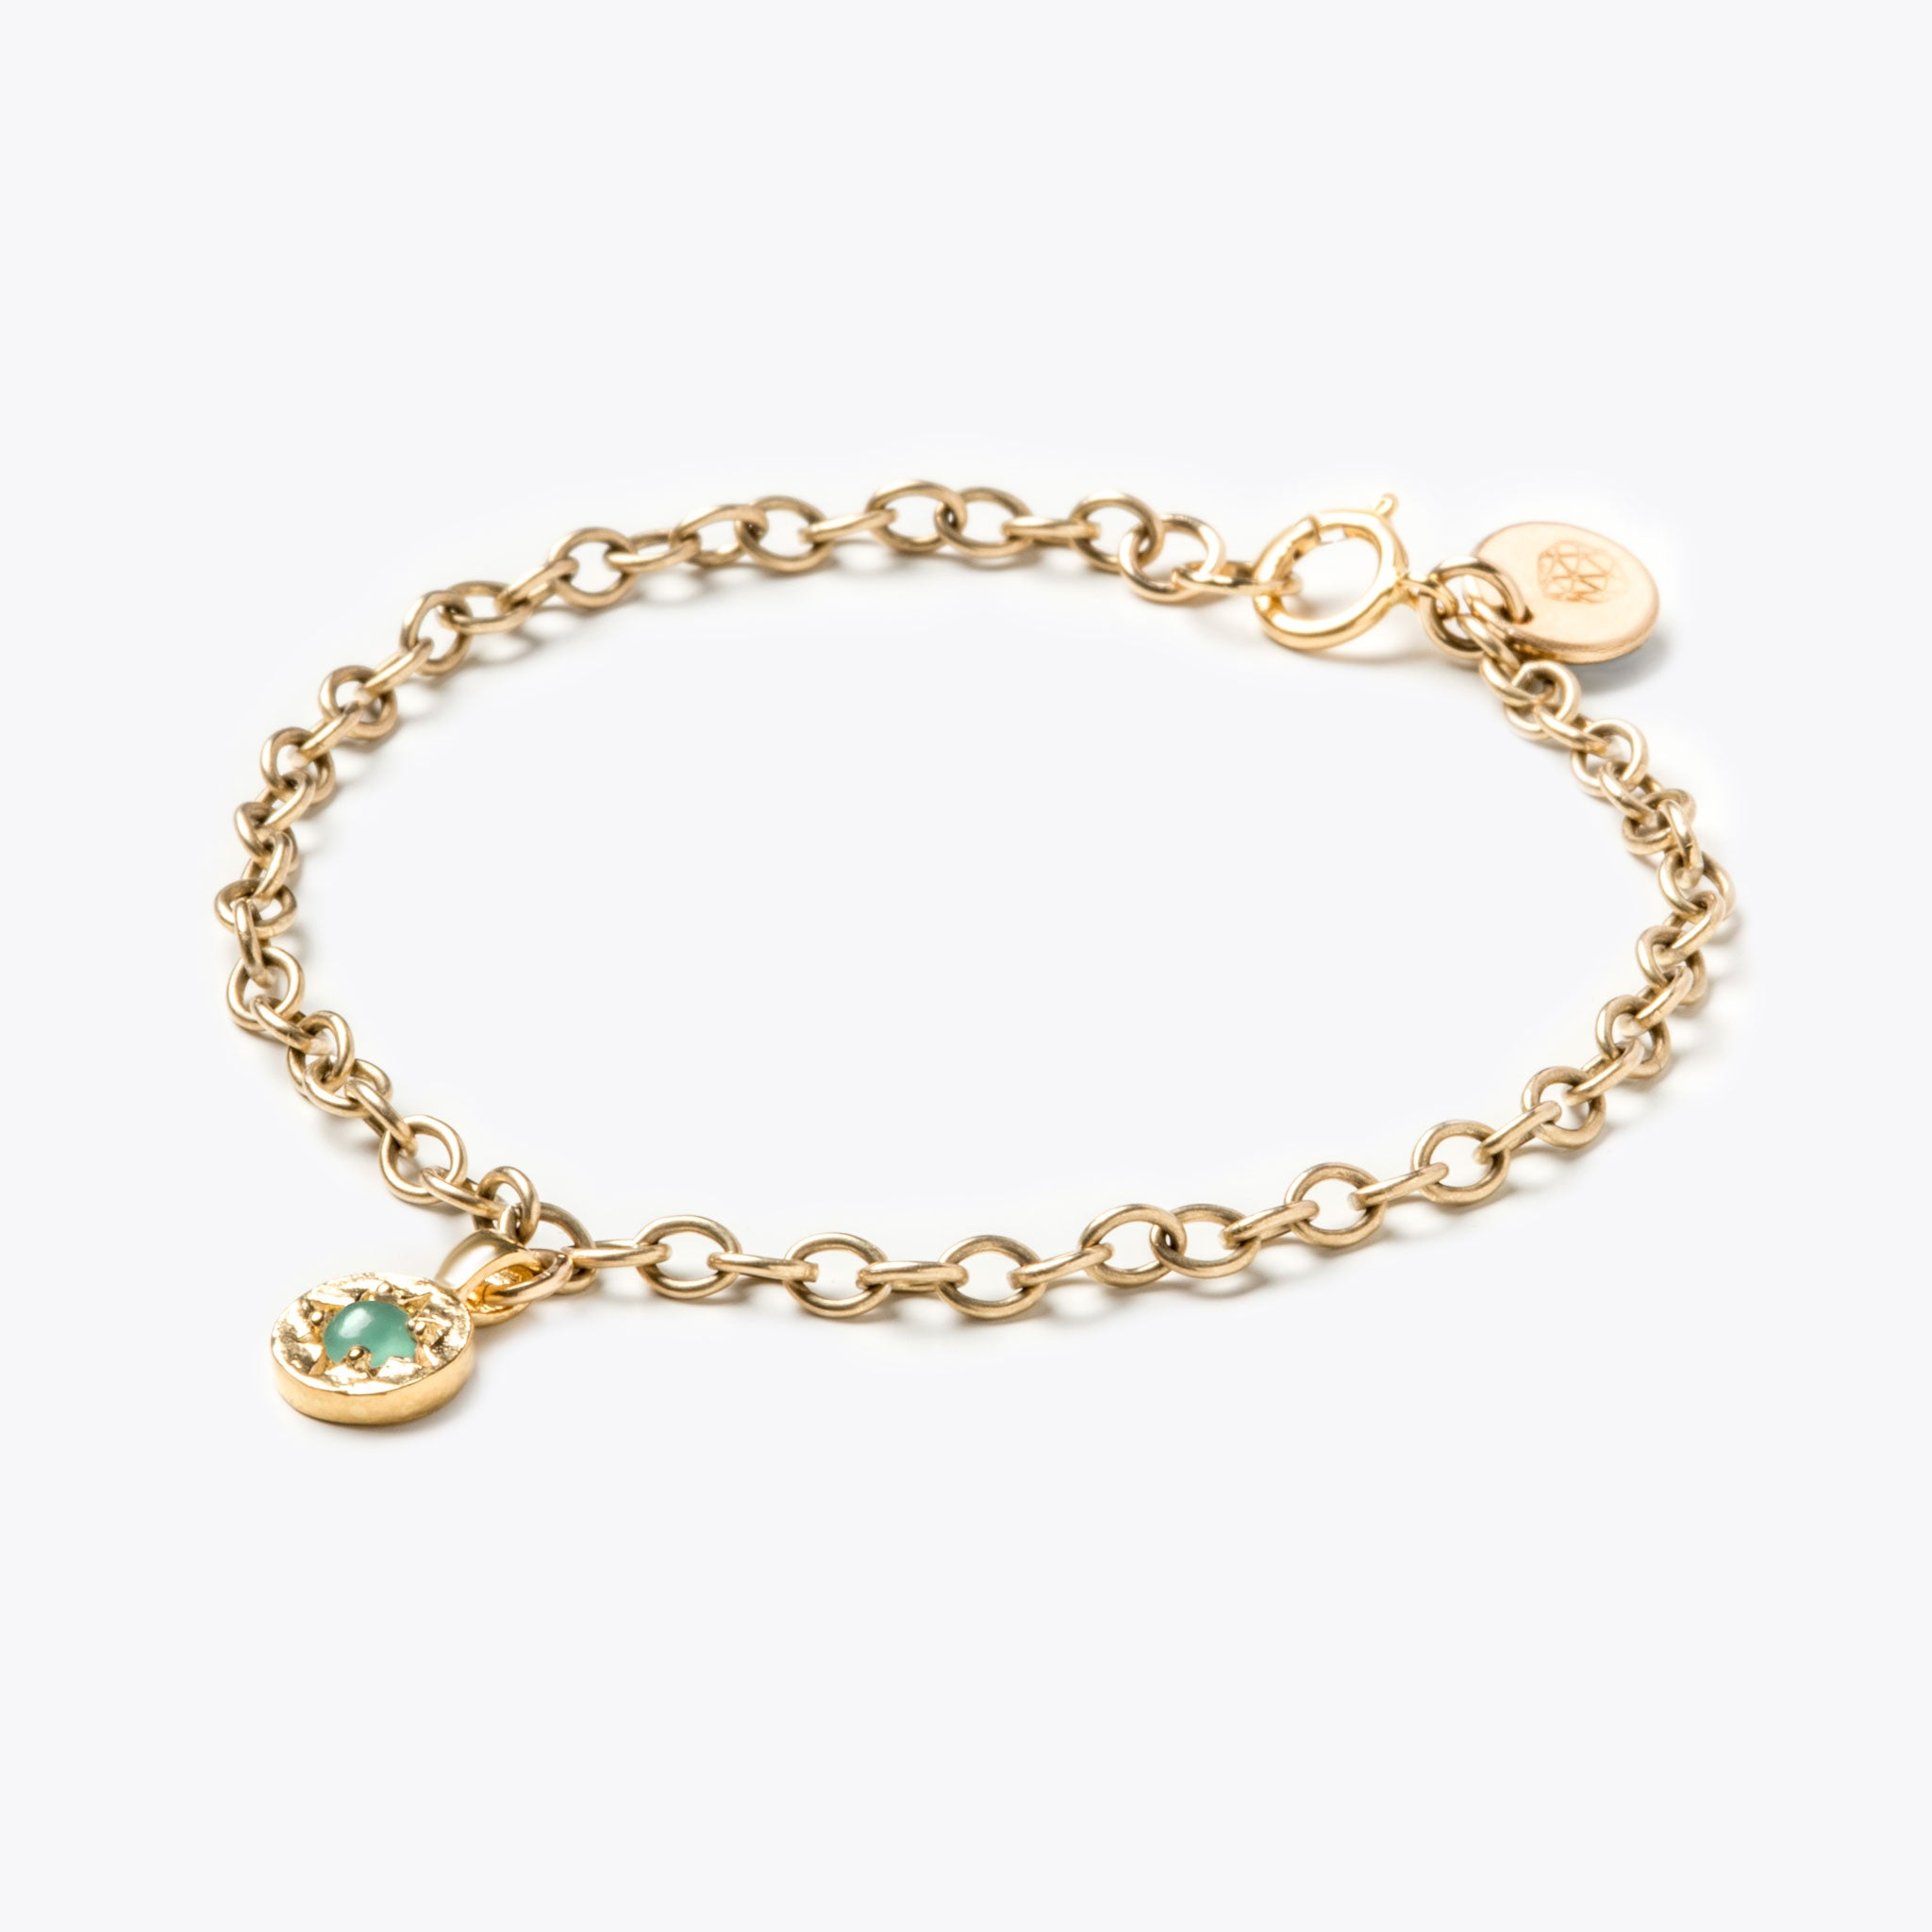 Wanderlust Life May birthstone 14k gold fill charm bracelet featuring semi precious green emerald gemstone symbolising the month of May. May birthstone gold bracelet available in an adjustable small 6.5